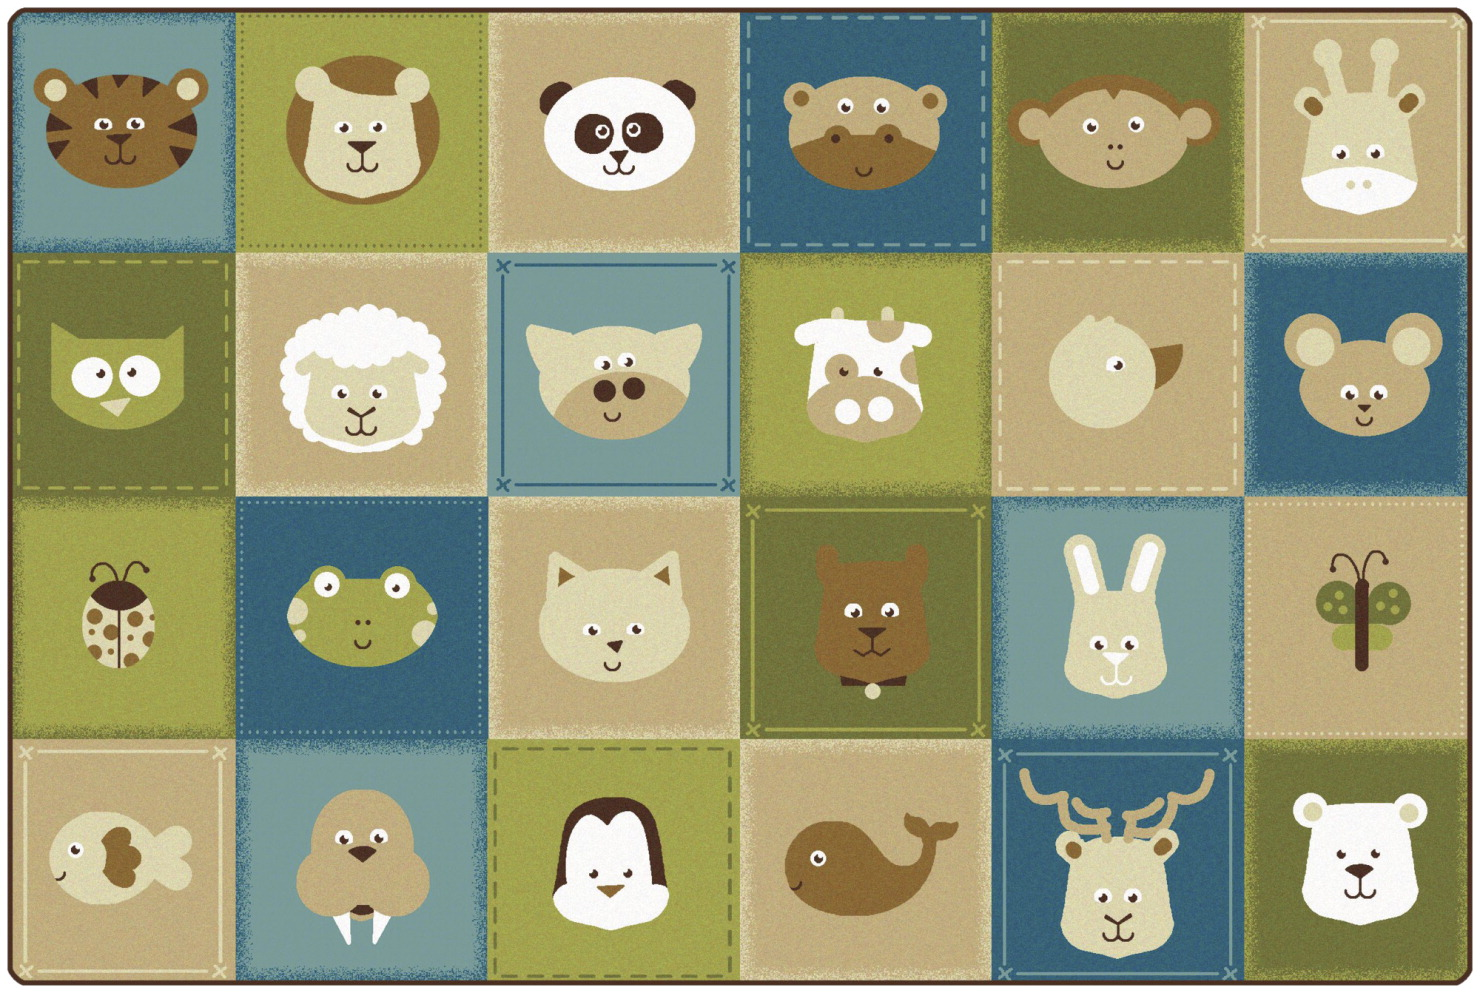 Carpet for Kids KIDSoft Animal Patchwork Carpet, Nature, 6 x 9 Feet